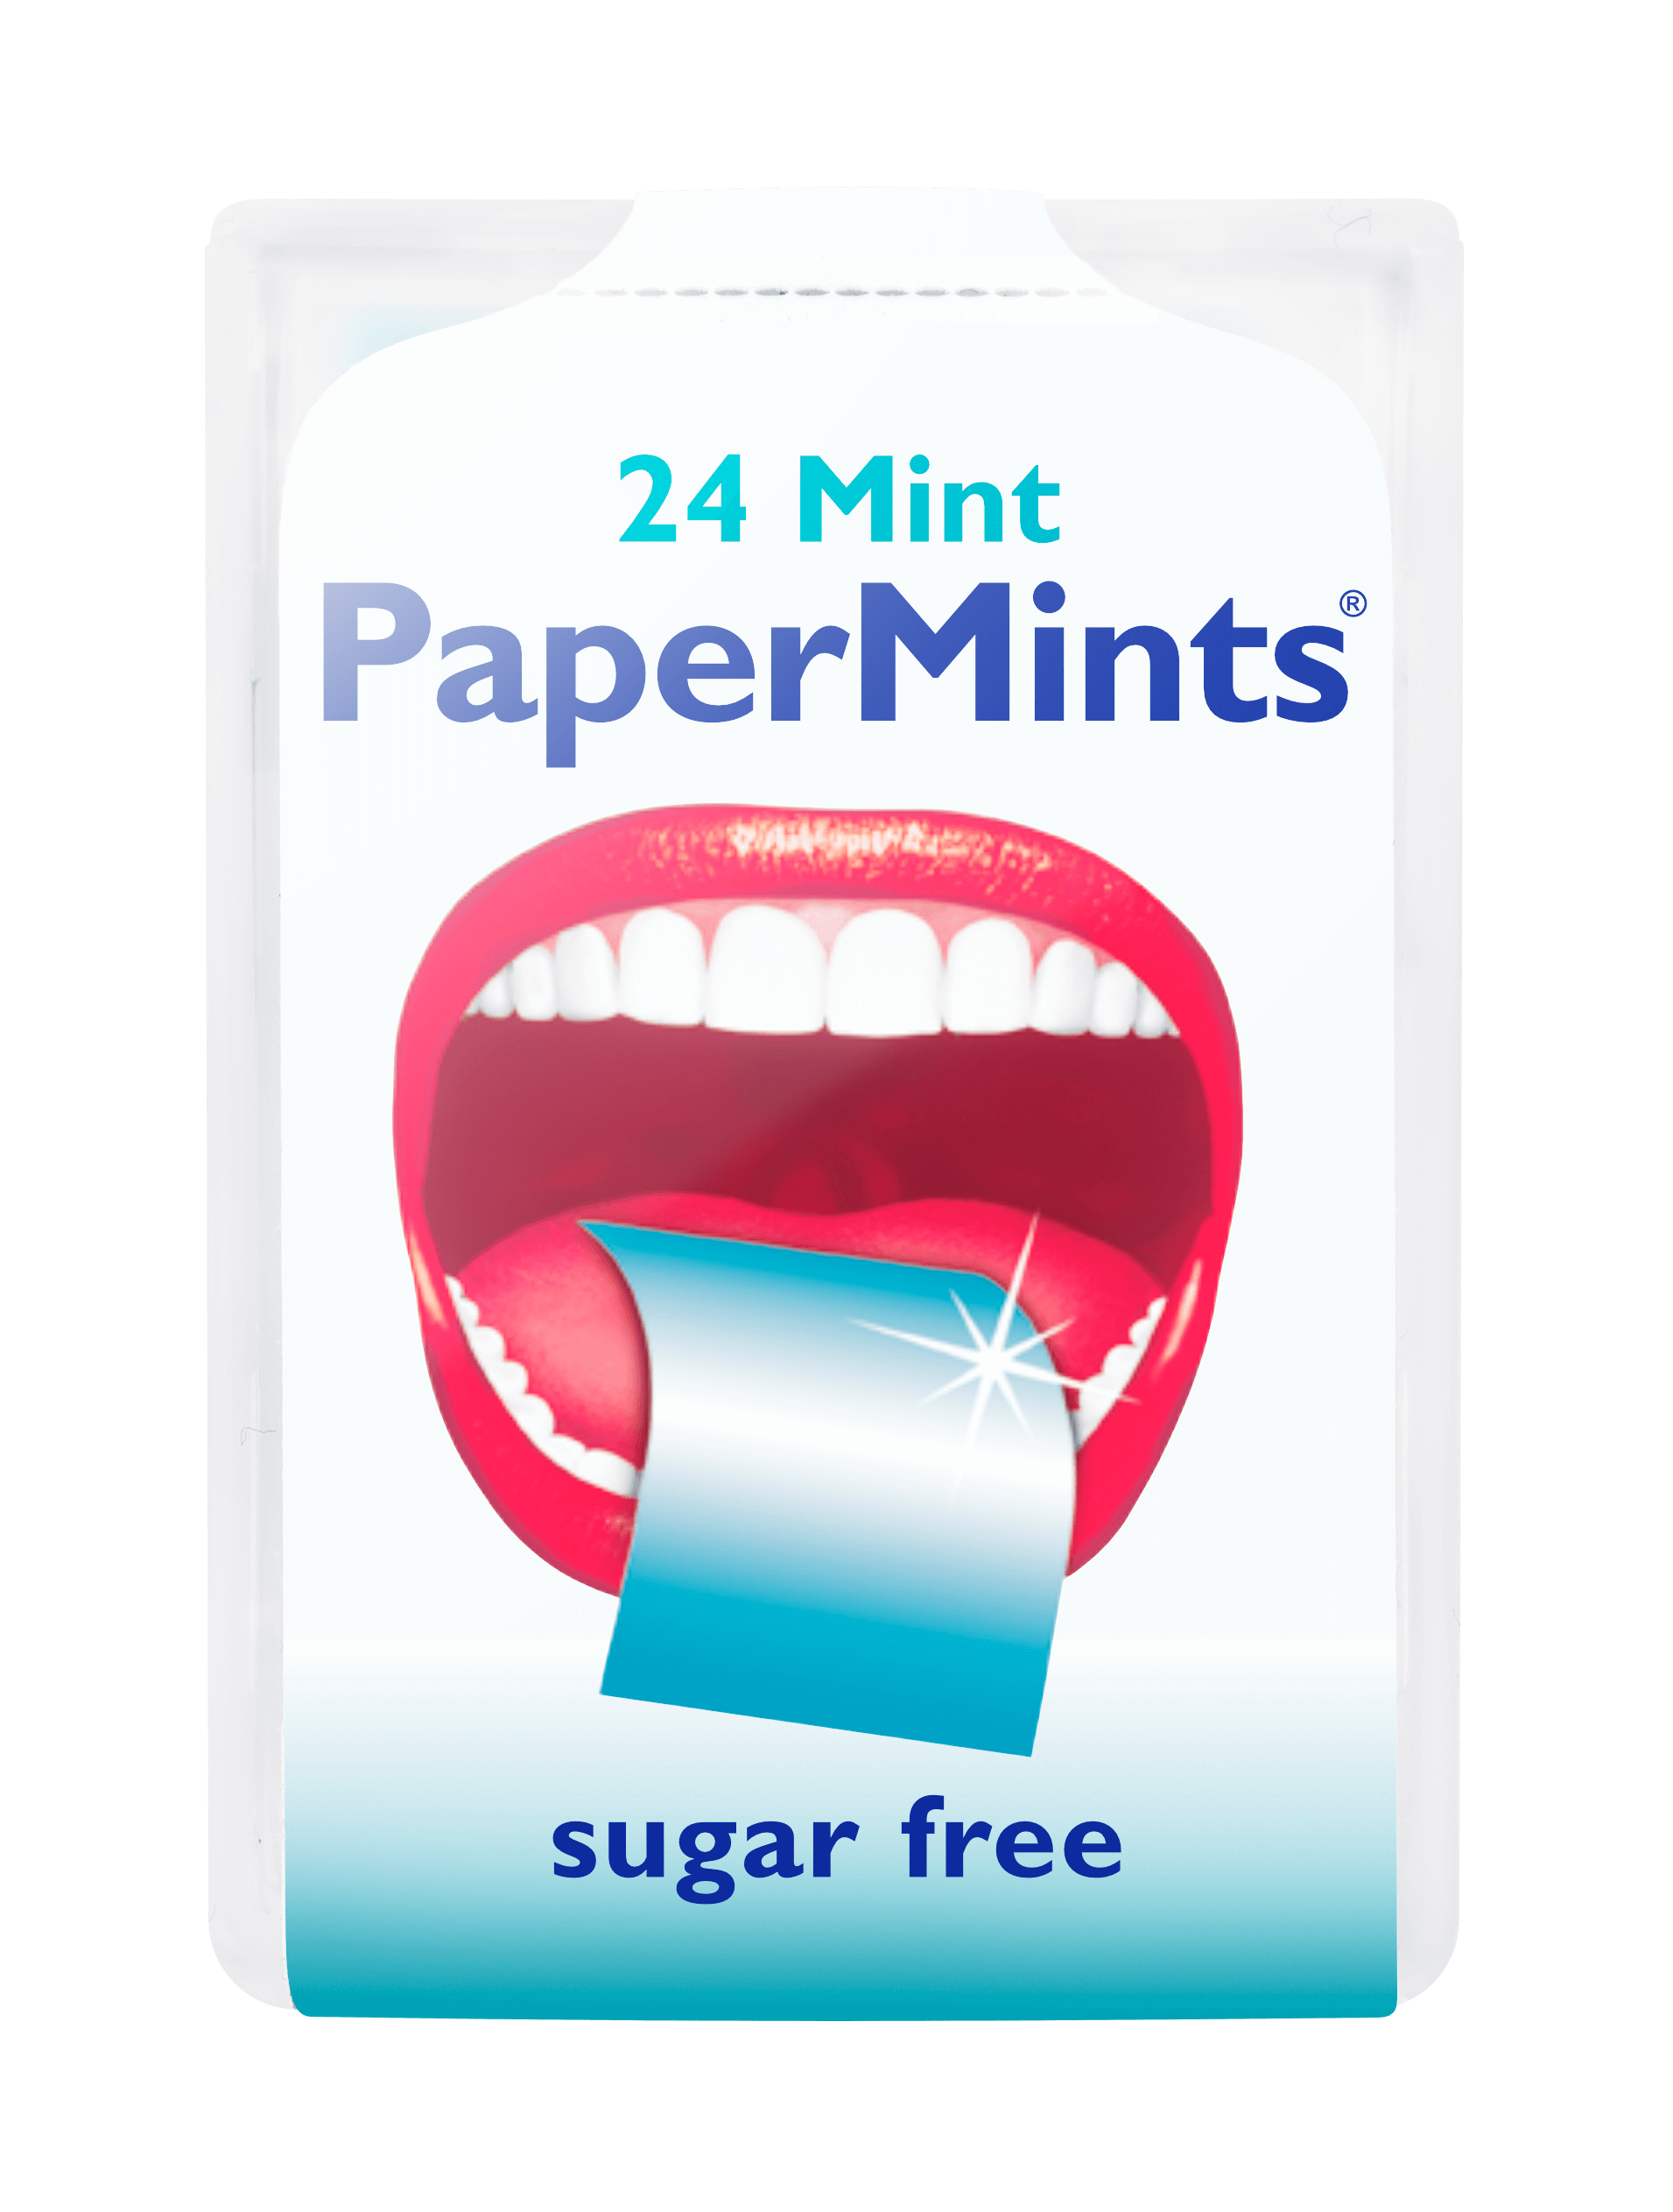 Papermints Uk-carré